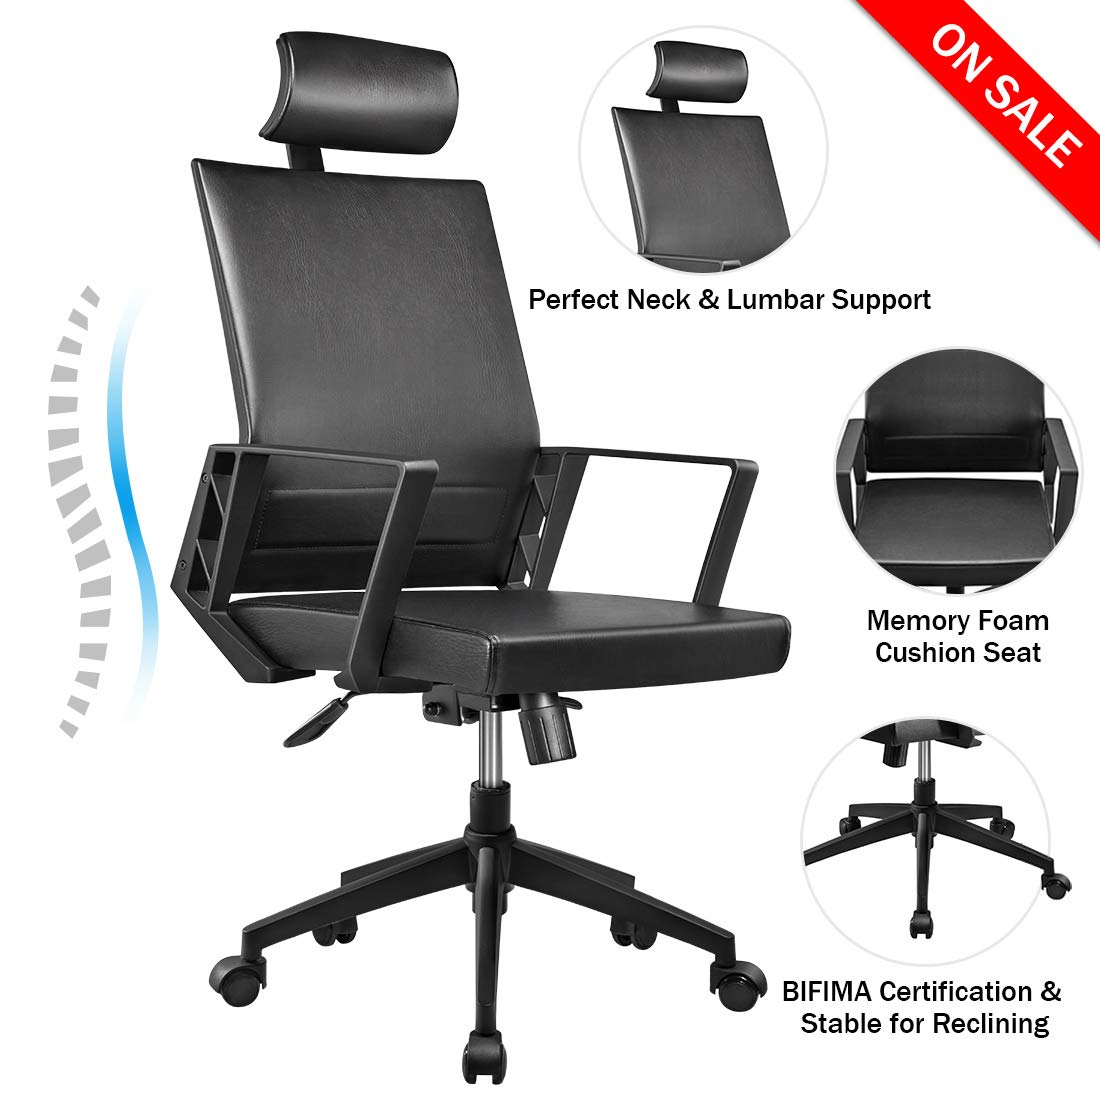 YOUNBO Office Chair High Back Leather Executive Computer Desk Chair, Adjustable Tilt Angle Headrest Lumbar Support Ergonomic Swivel Chair with Armrest Pads for office